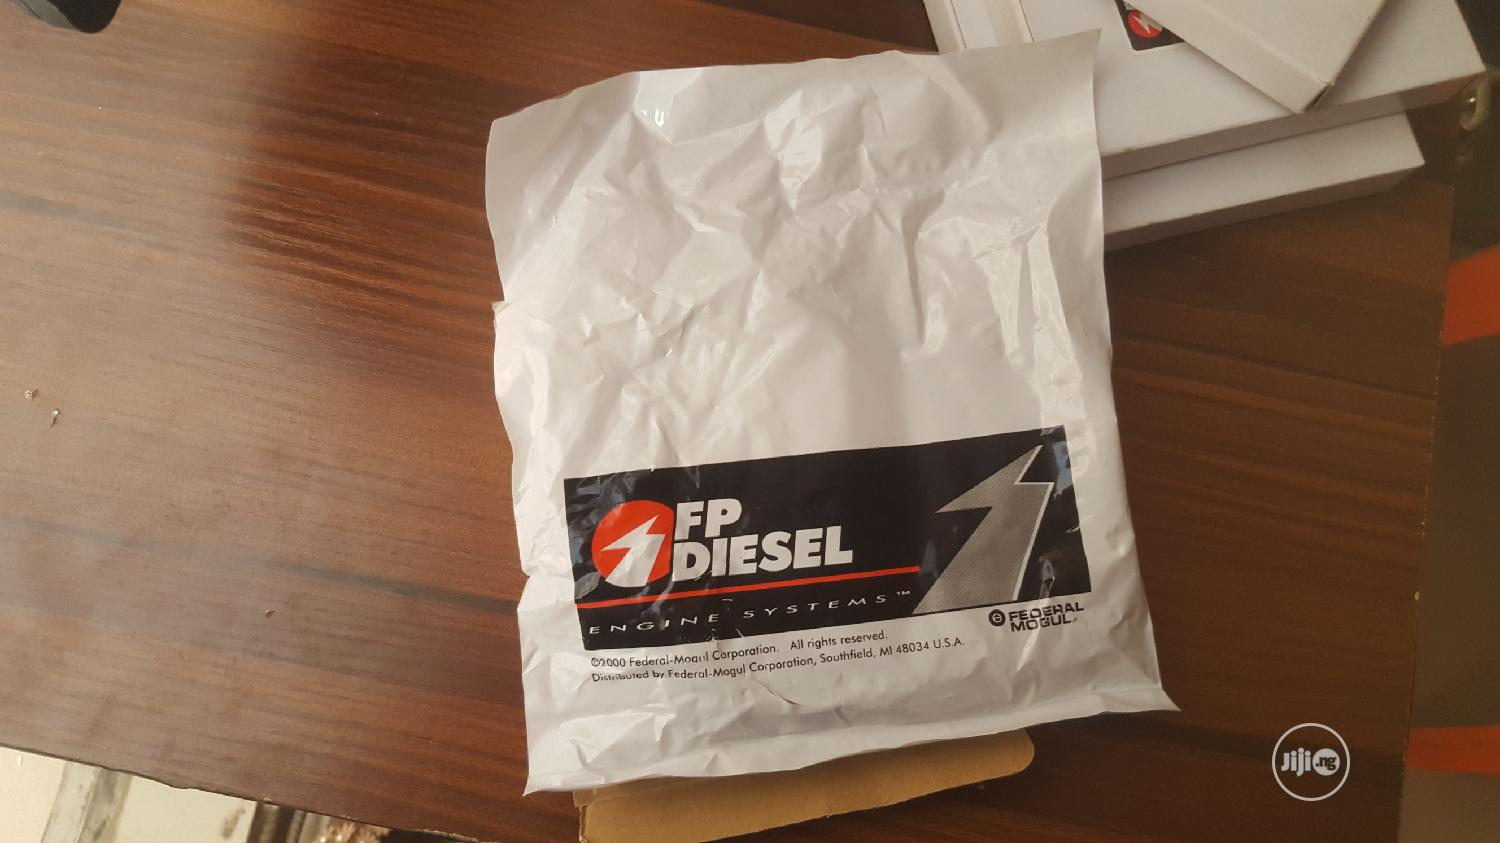 FP Diesel RING SET 3306. Part 9S3068 4 All Caterpilar. Lagos | Vehicle Parts & Accessories for sale in Badagry, Lagos State, Nigeria